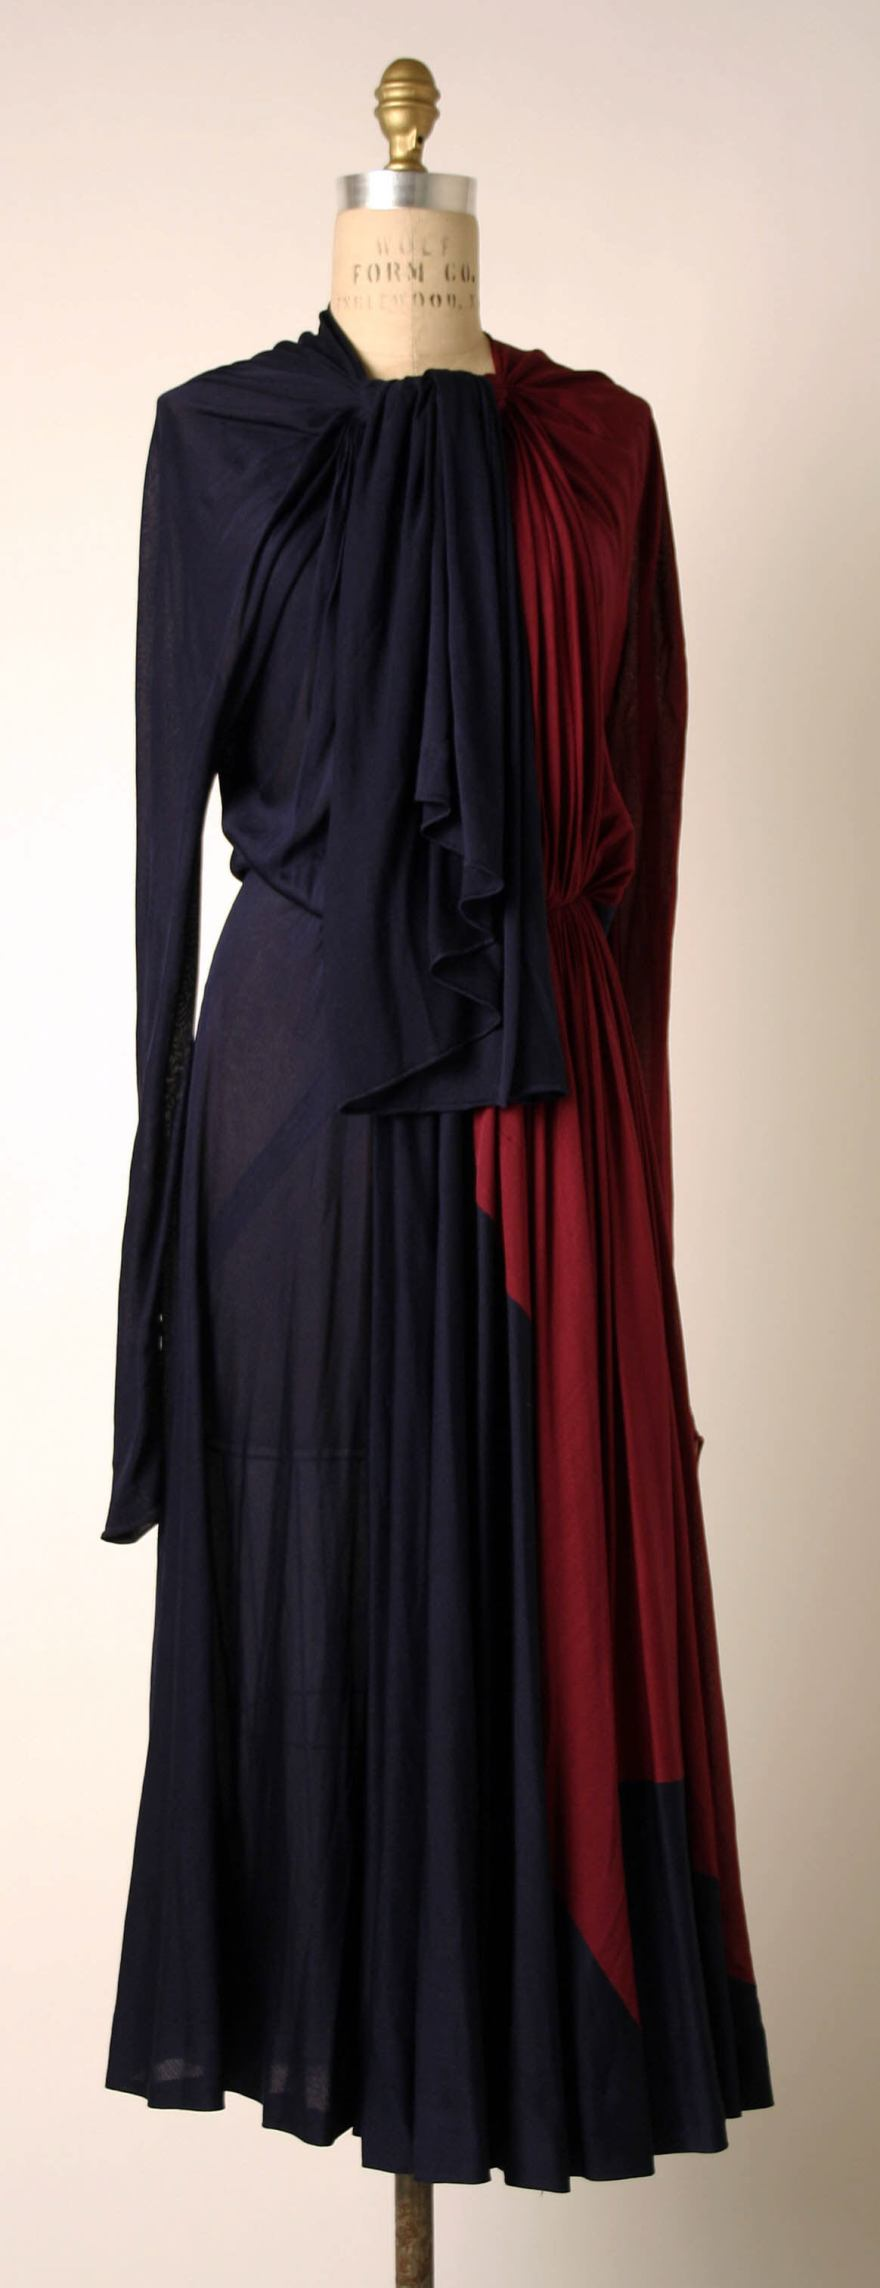 Afternoon dress Madame Grès (Alix Barton) (French, Paris 1903–1993 Var region)